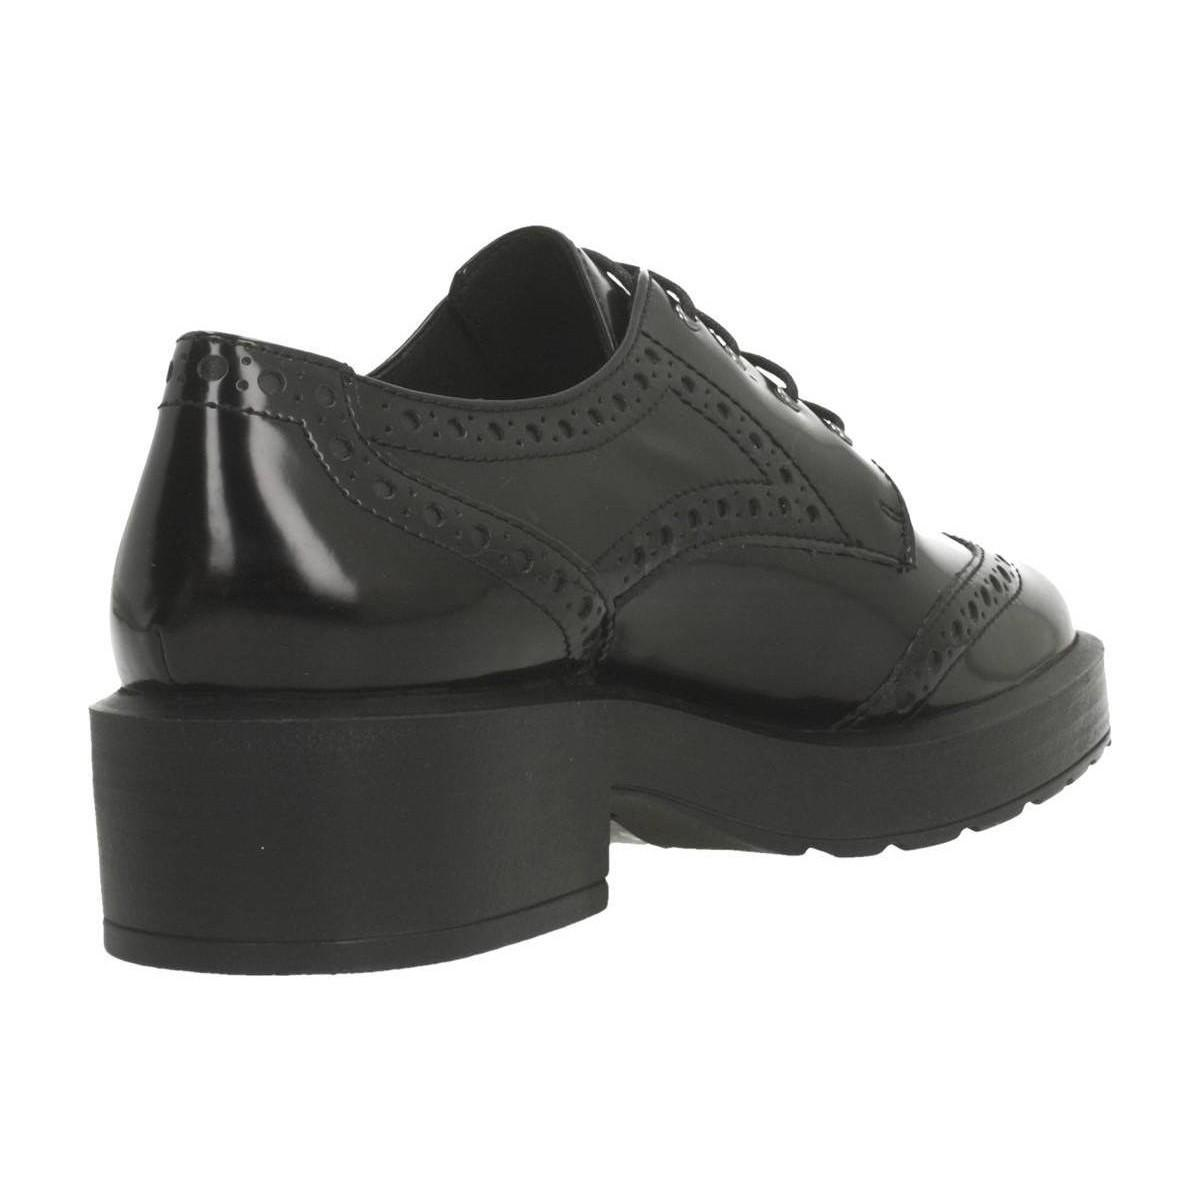 D Kenly Women's Casual Shoes In Black